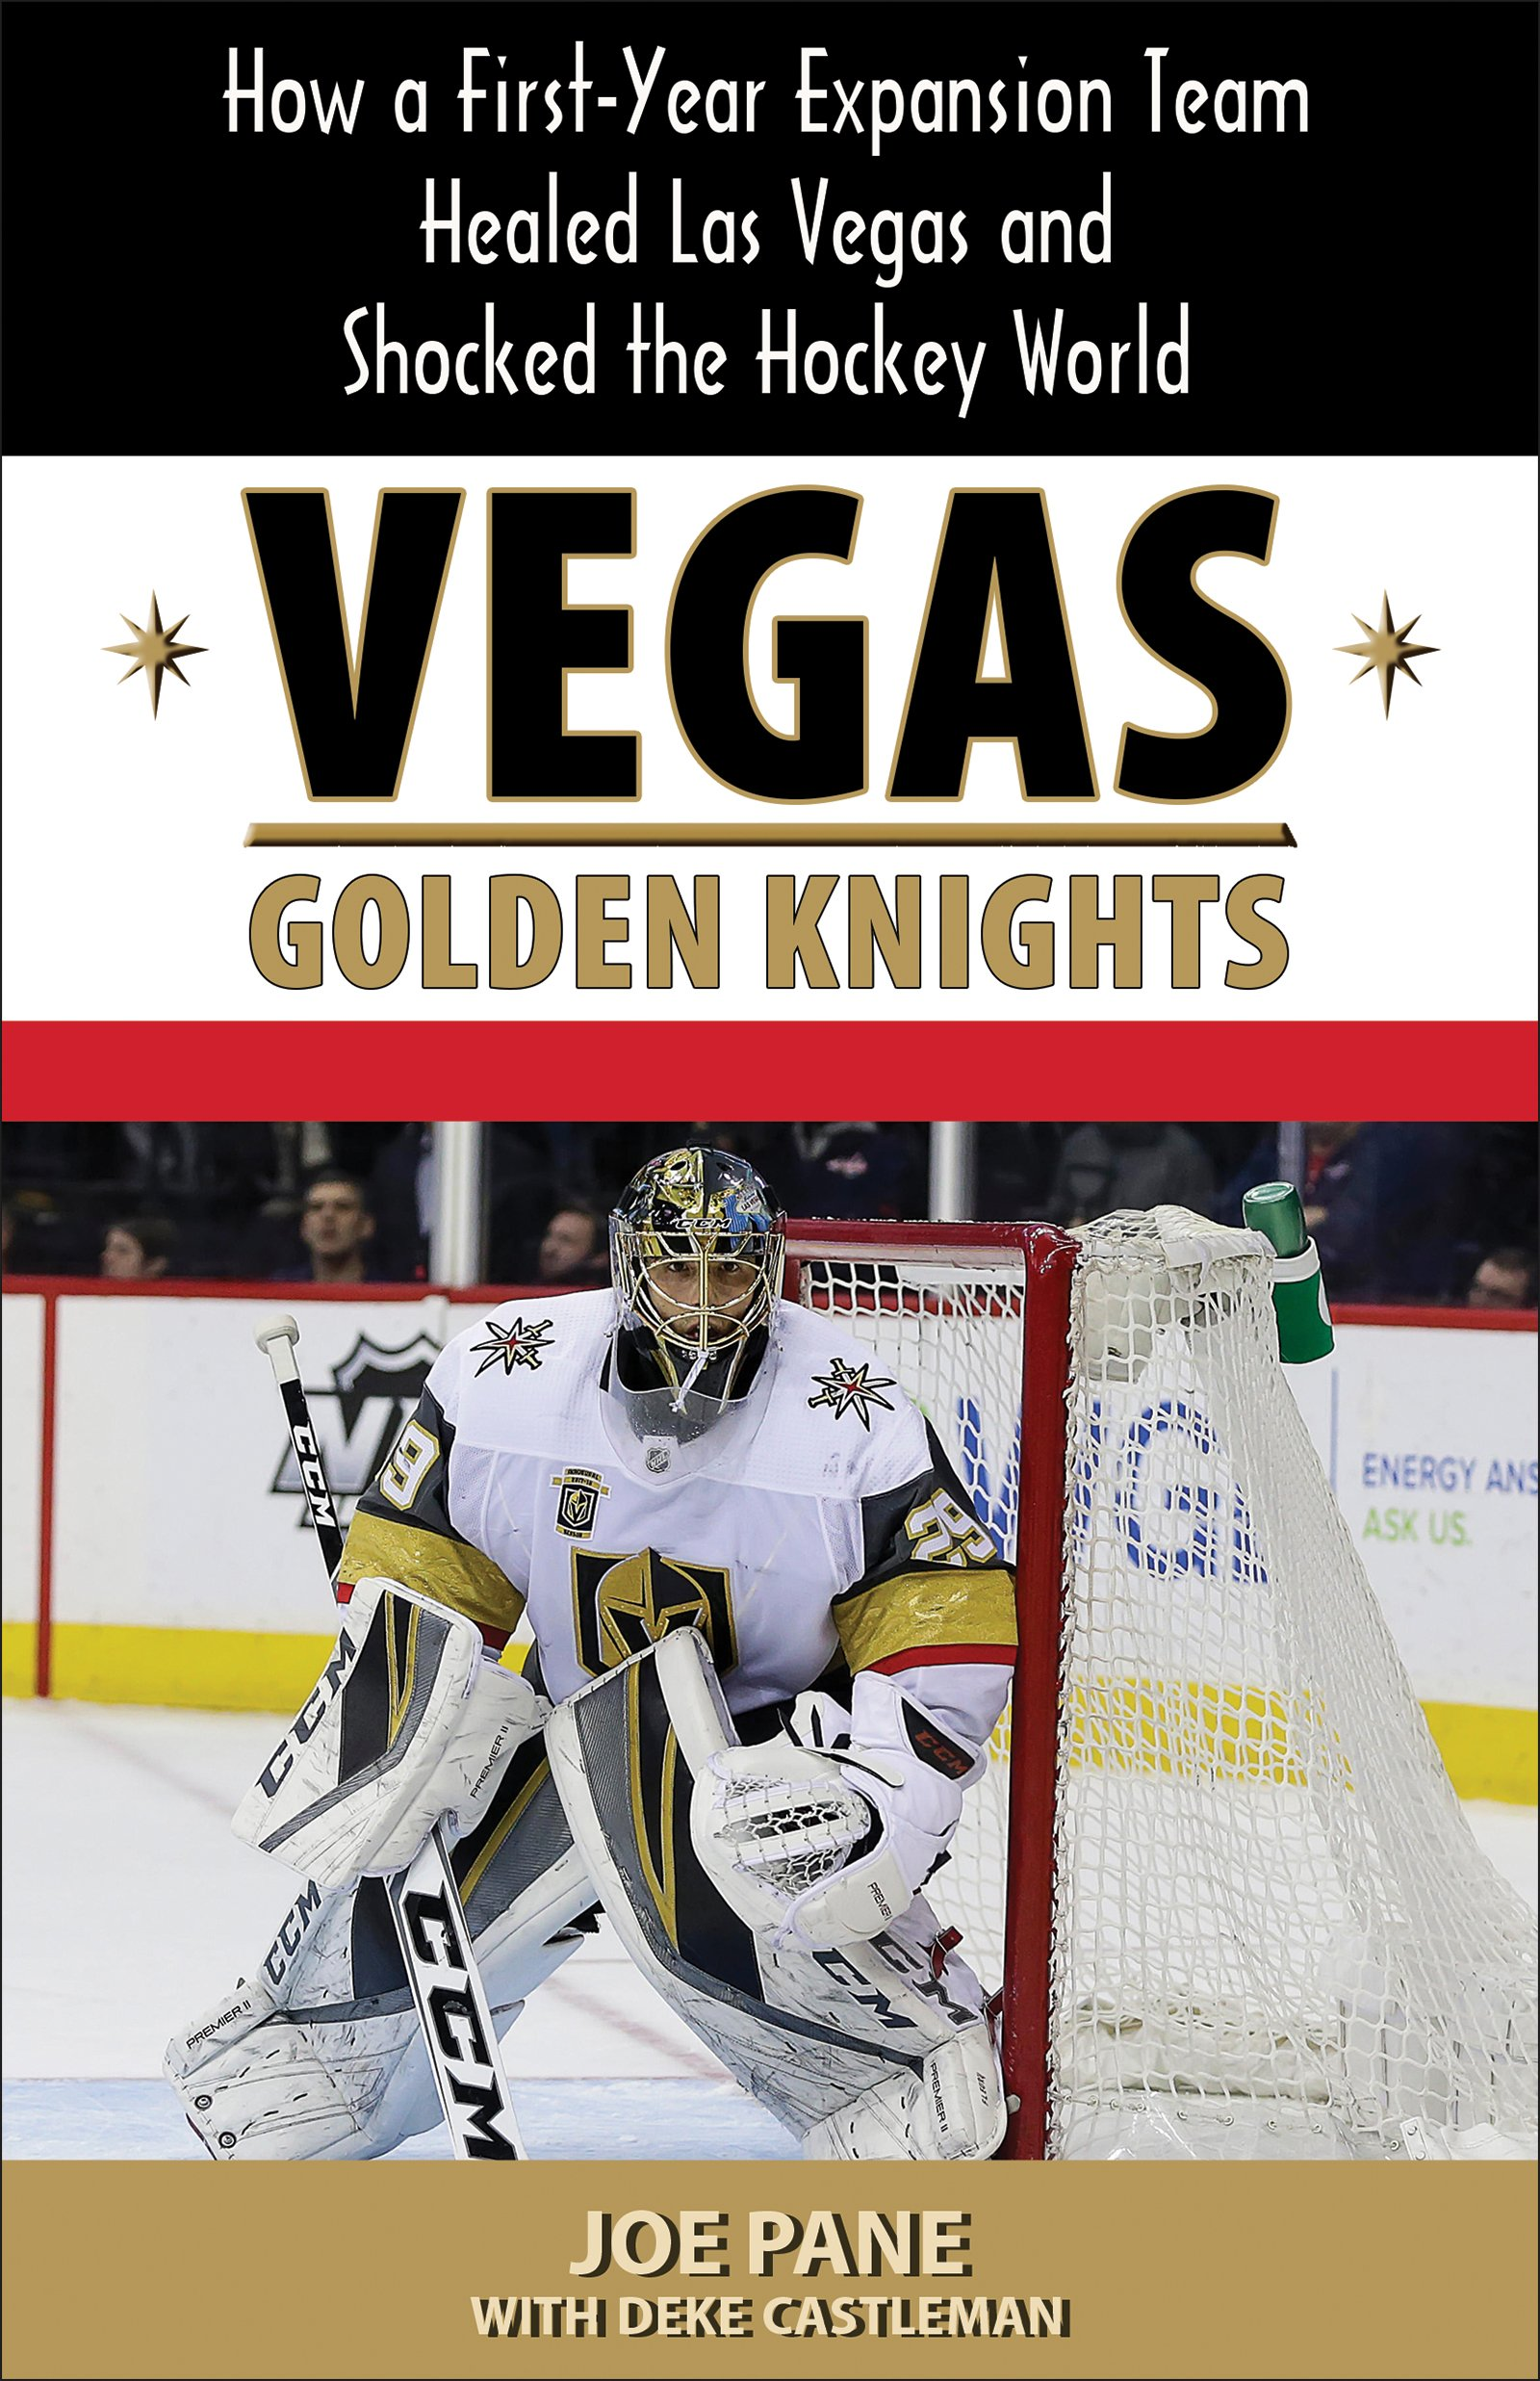 e733aab2da4 Vegas Golden Knights  How a First-Year Expansion Team Healed Las Vegas and  Shocked the Hockey World Paperback – September 25